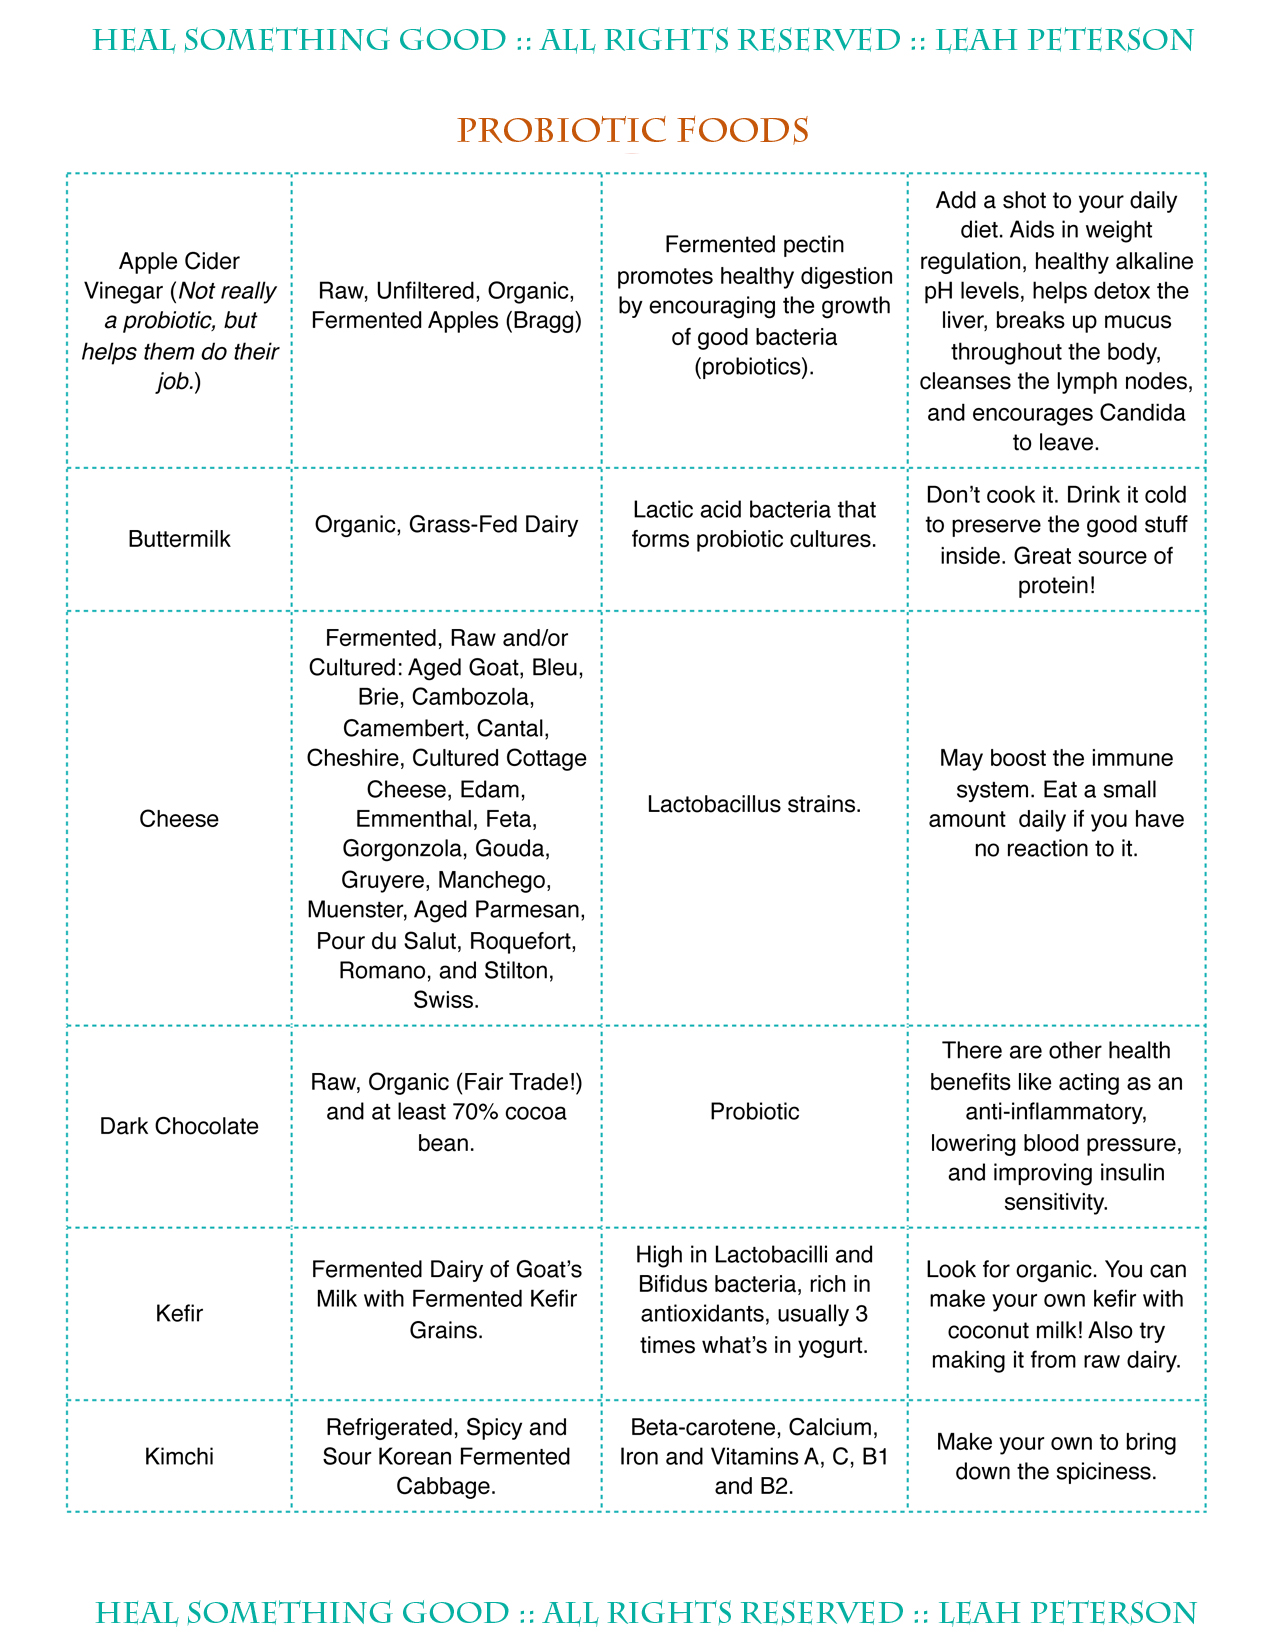 chart – probiotics & fermented foods – heal something good